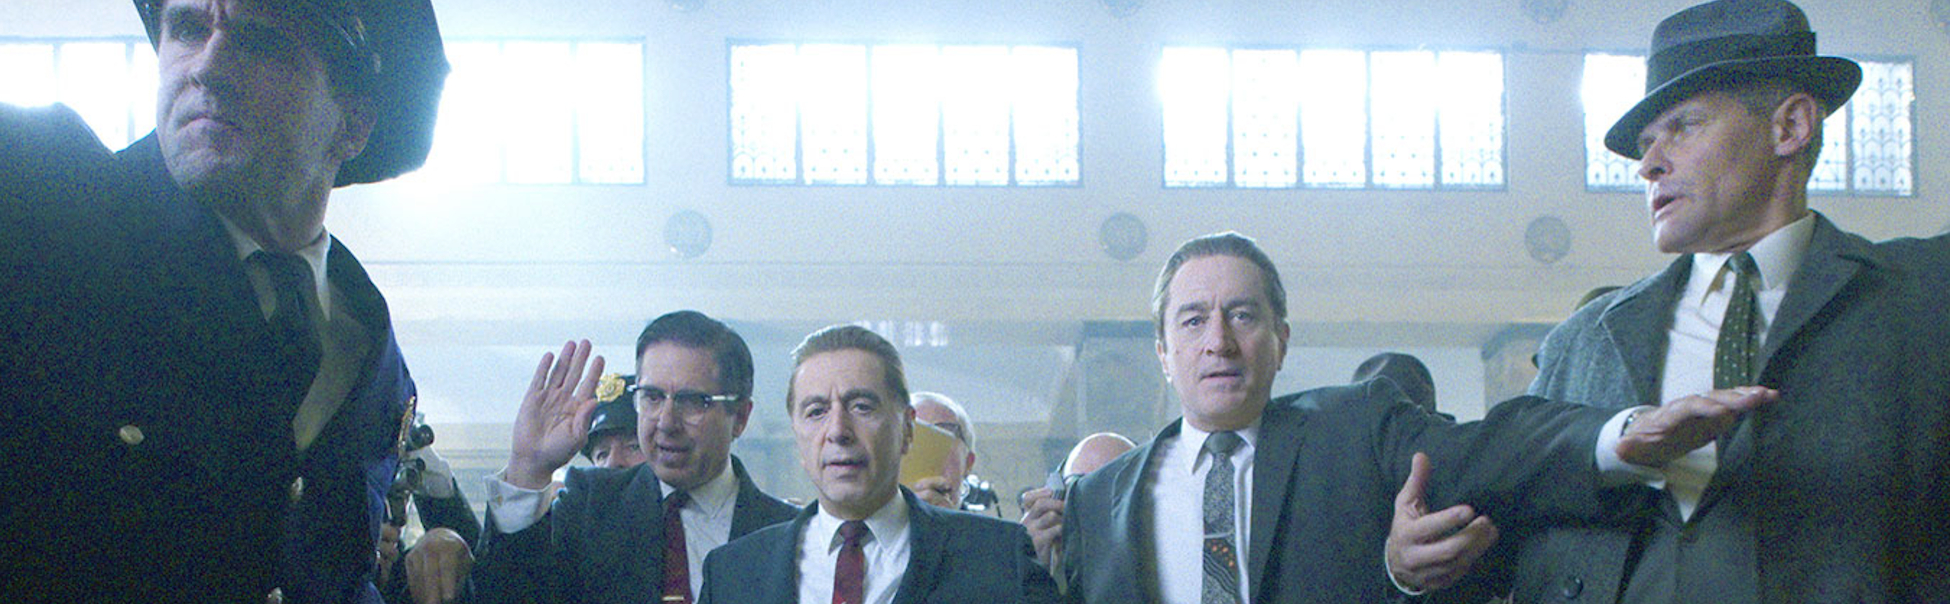 promotional image from the film The Irishman